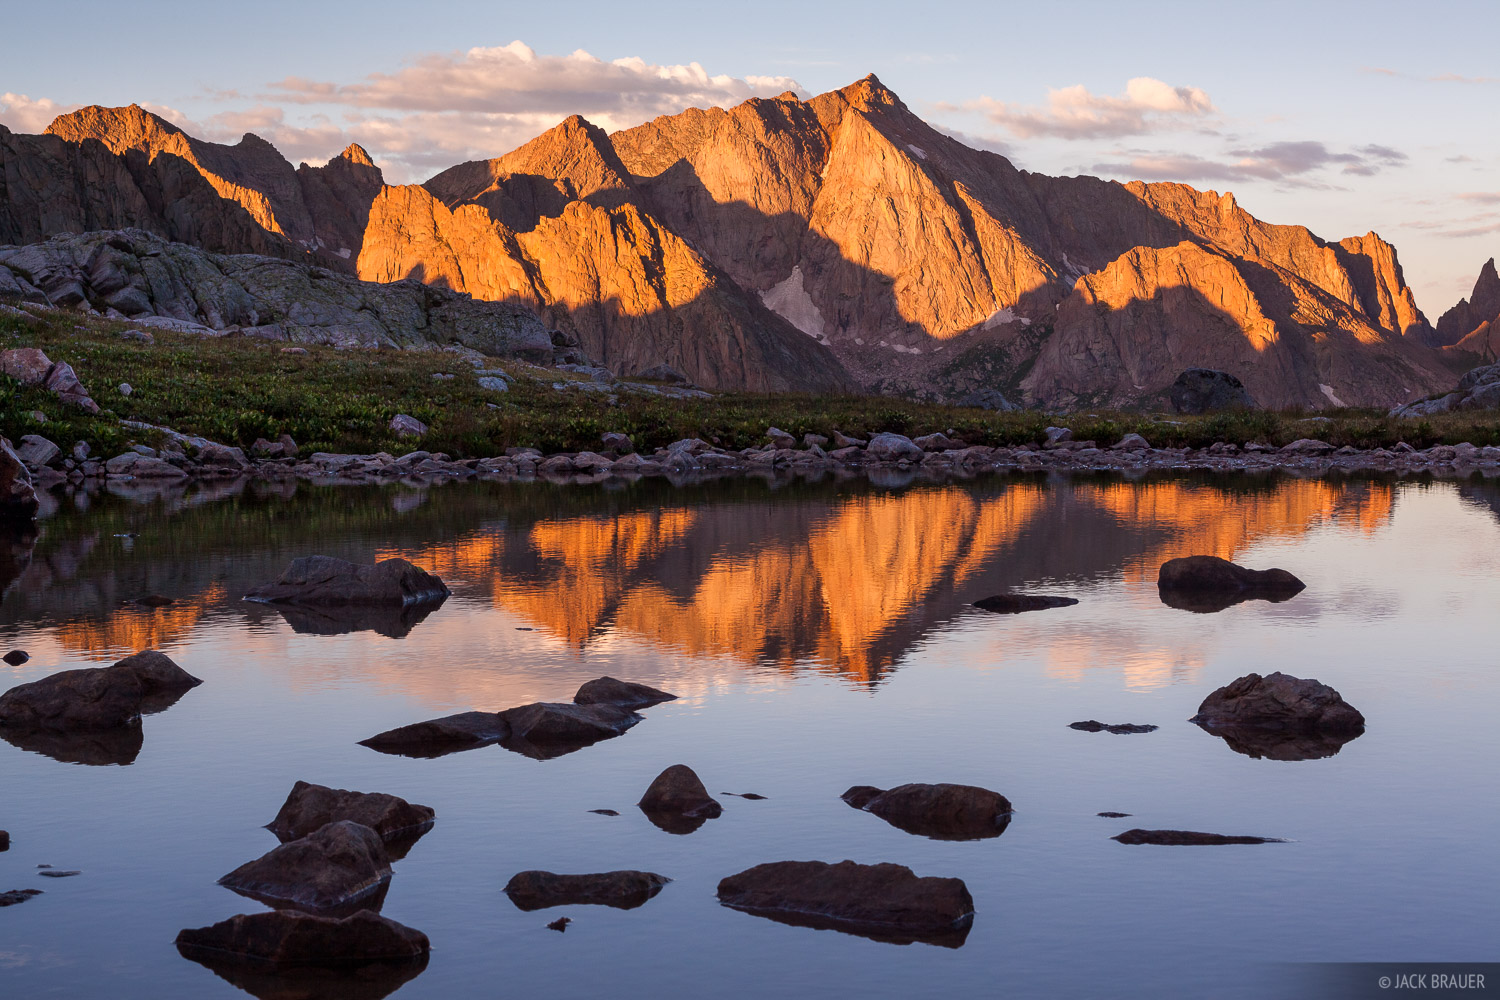 Mt. Eolus, reflection, San Juan Mountains, Colorado, sunrise, photo